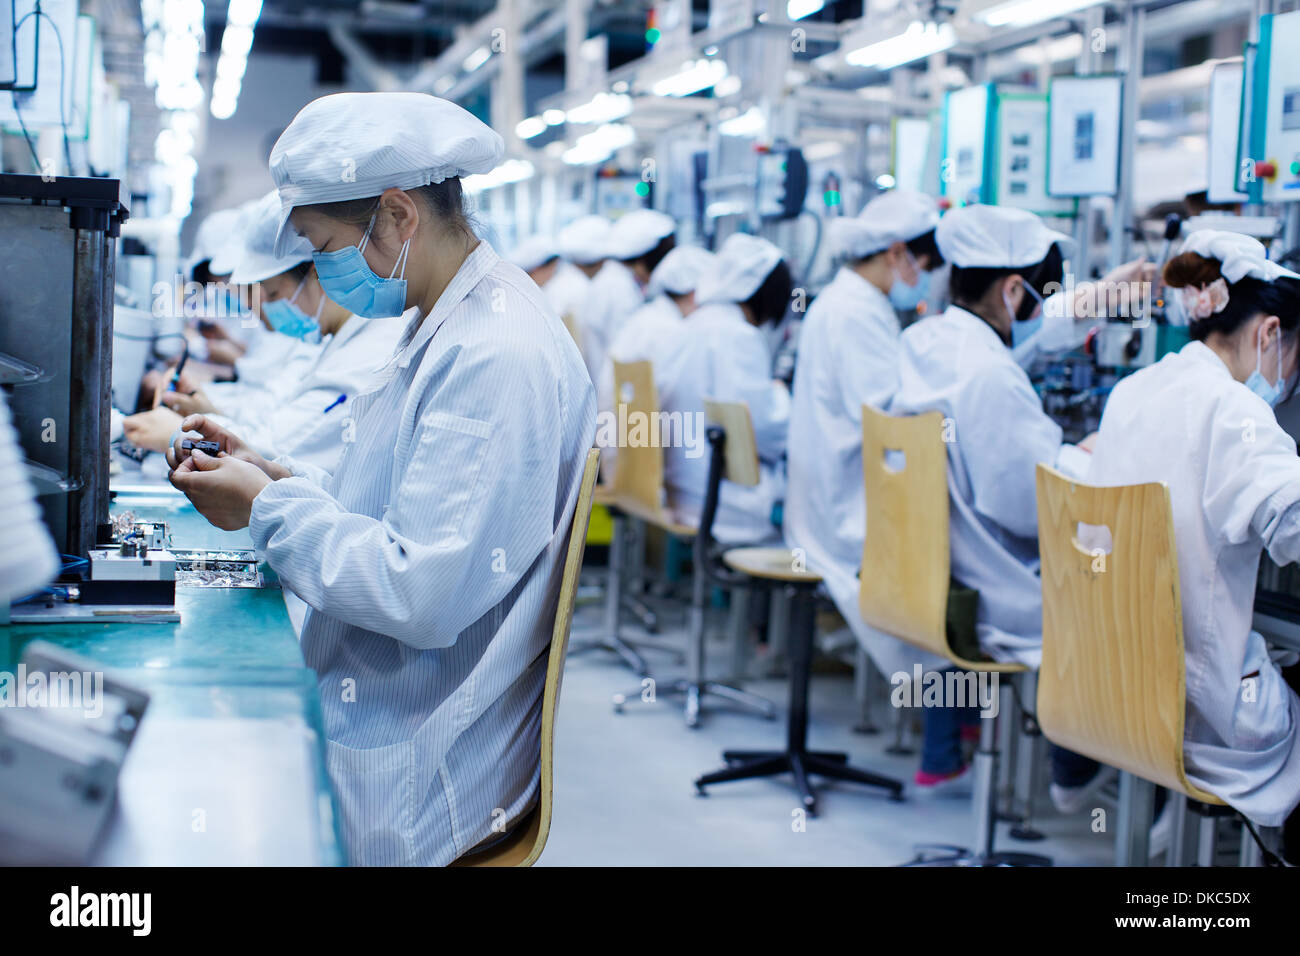 Group of workers at small parts manufacturing factory in China, wearing protective clothing, hats and masks - Stock Image